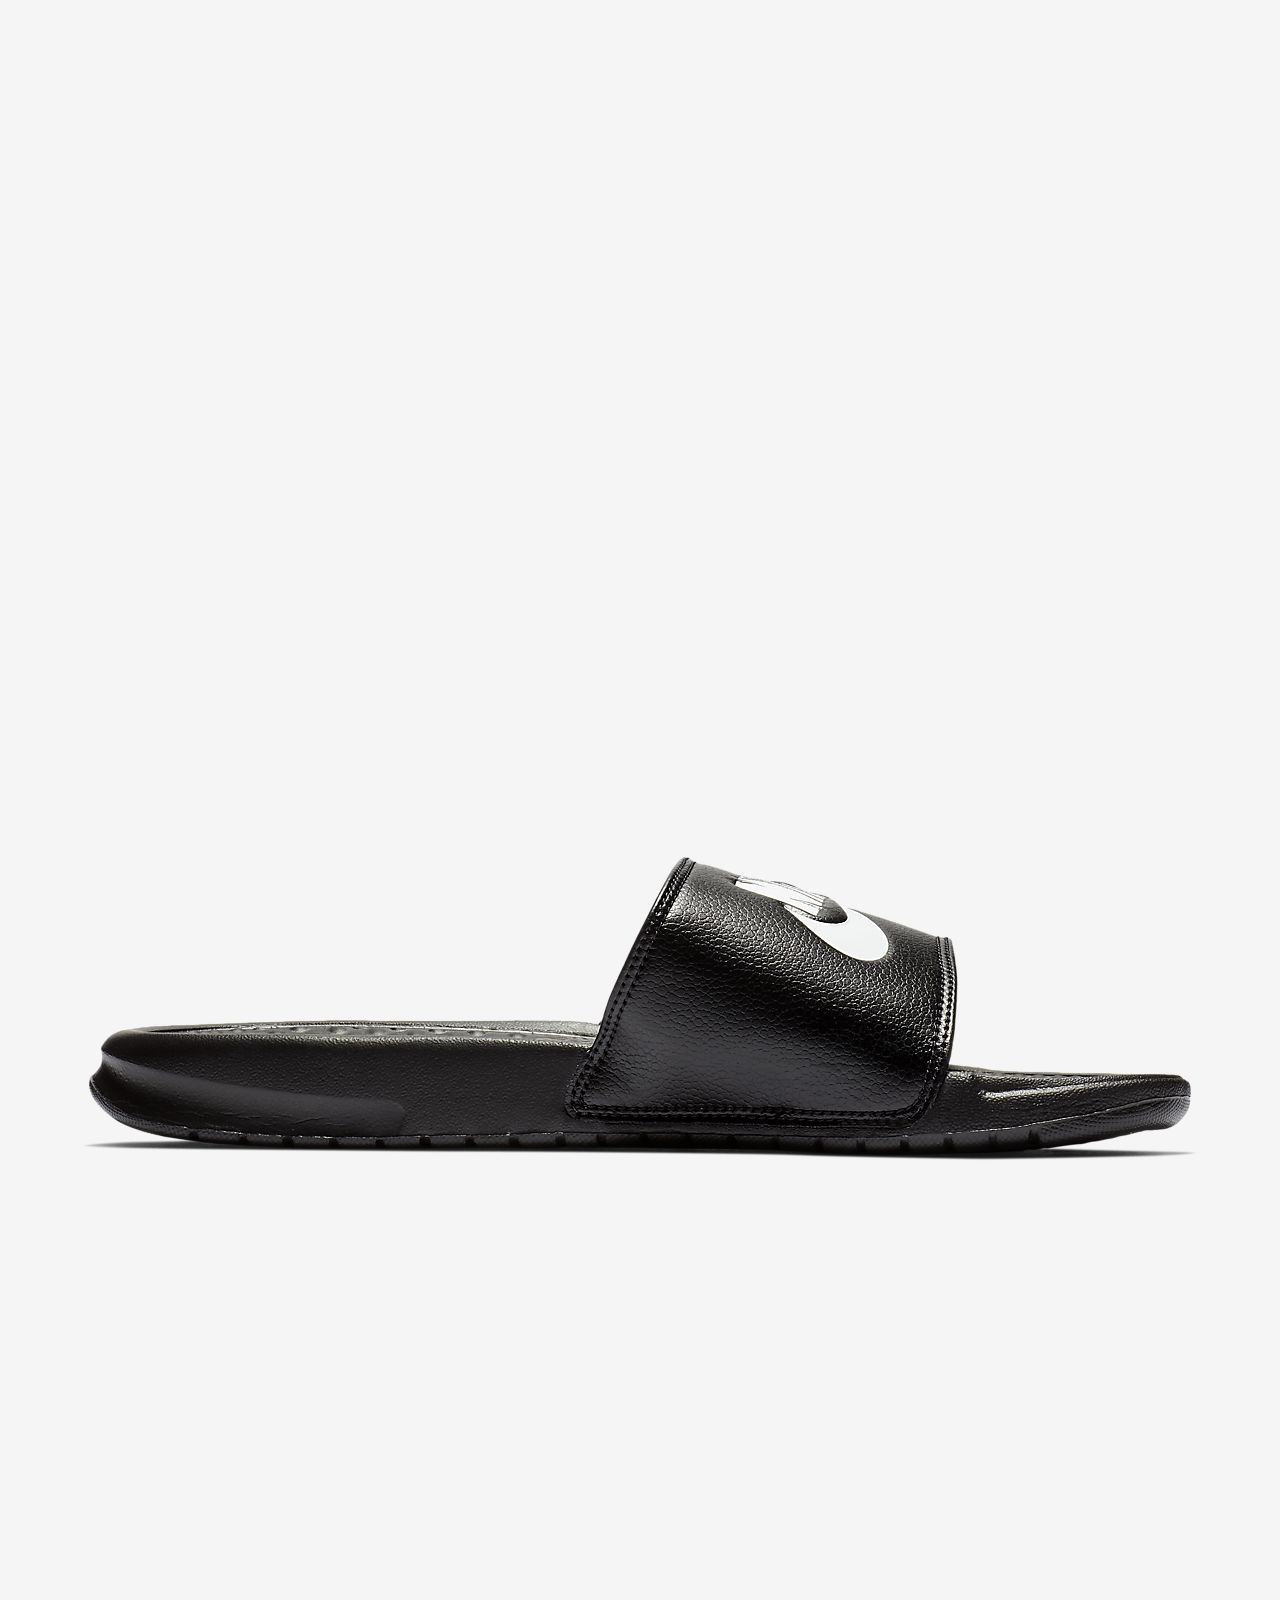 timeless design 80886 c75de Low Resolution Nike Benassi Slide Nike Benassi Slide